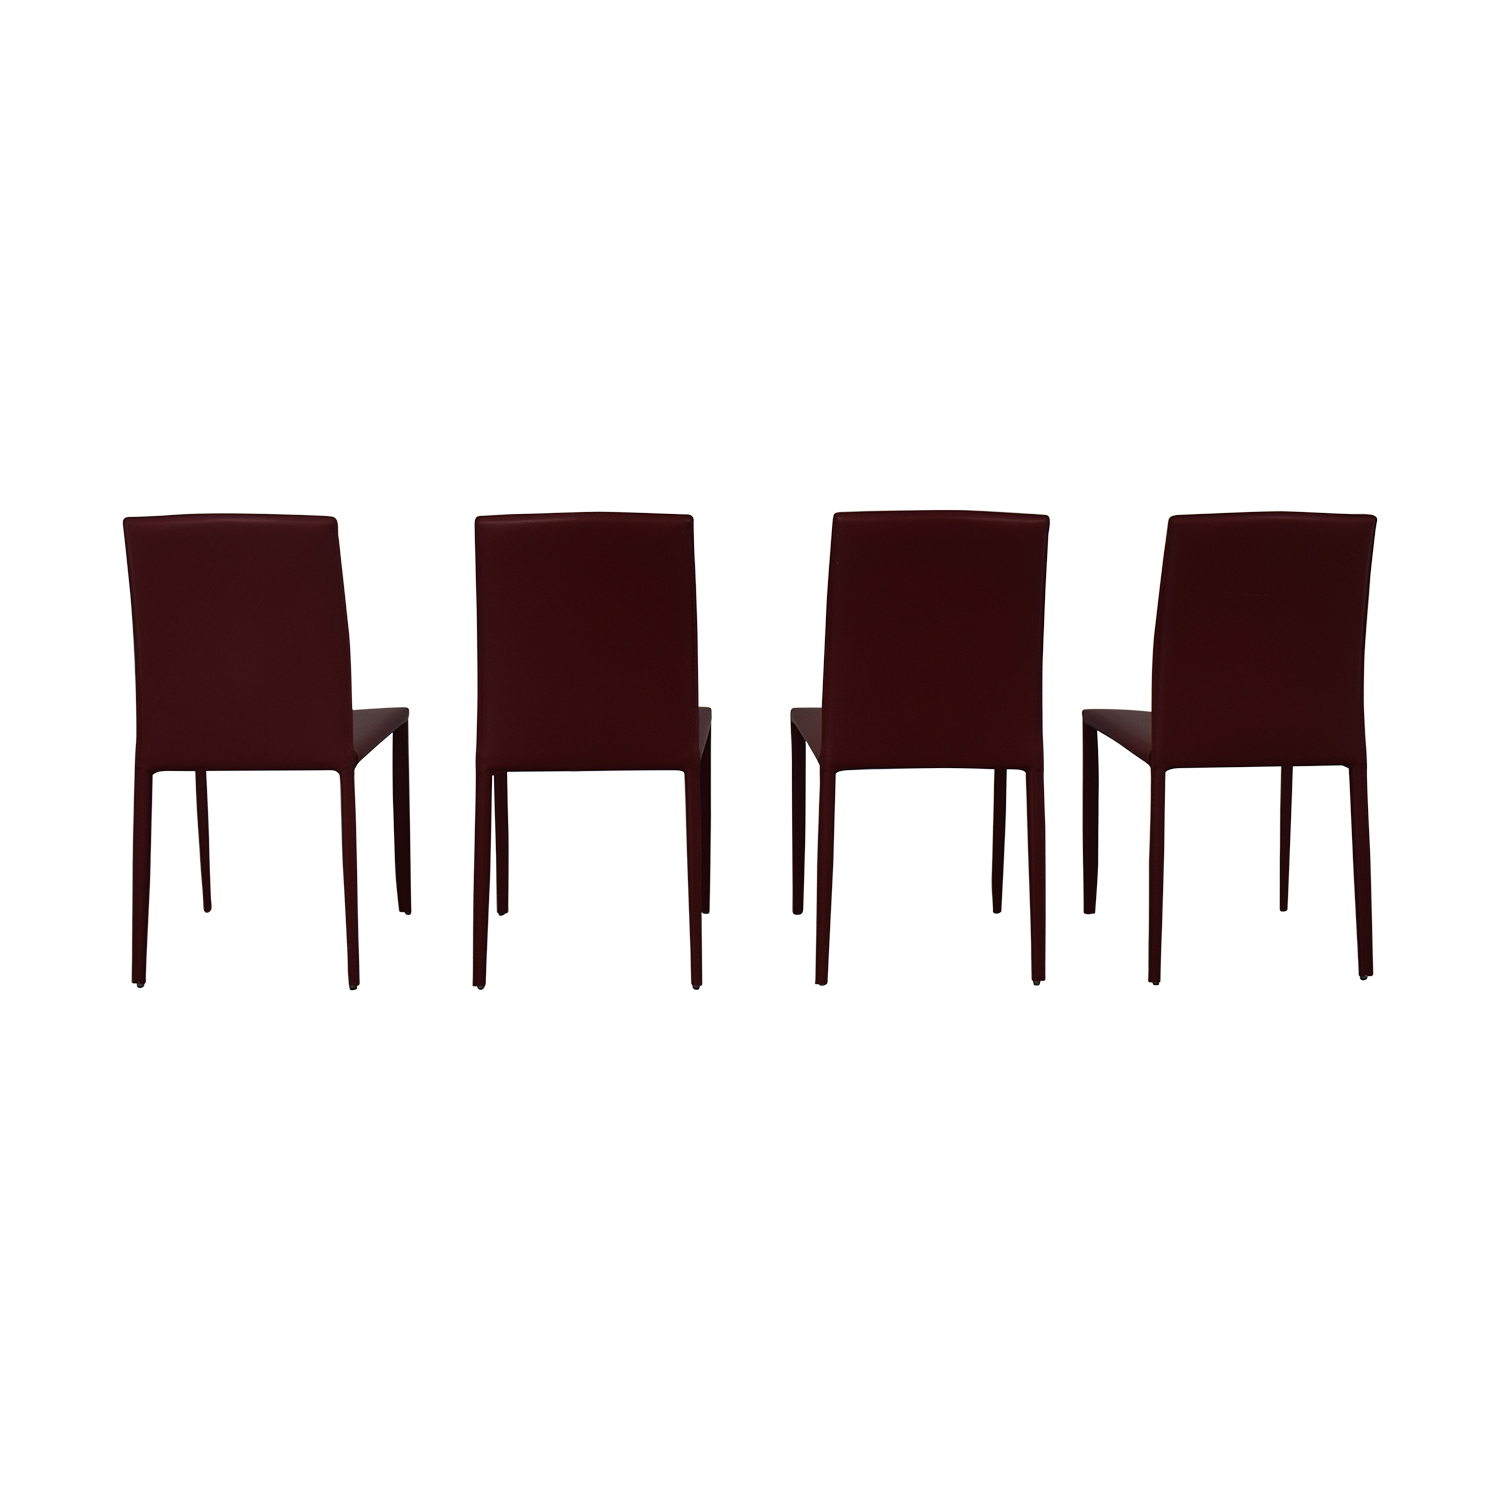 Modloft Dining Chairs / Dining Chairs